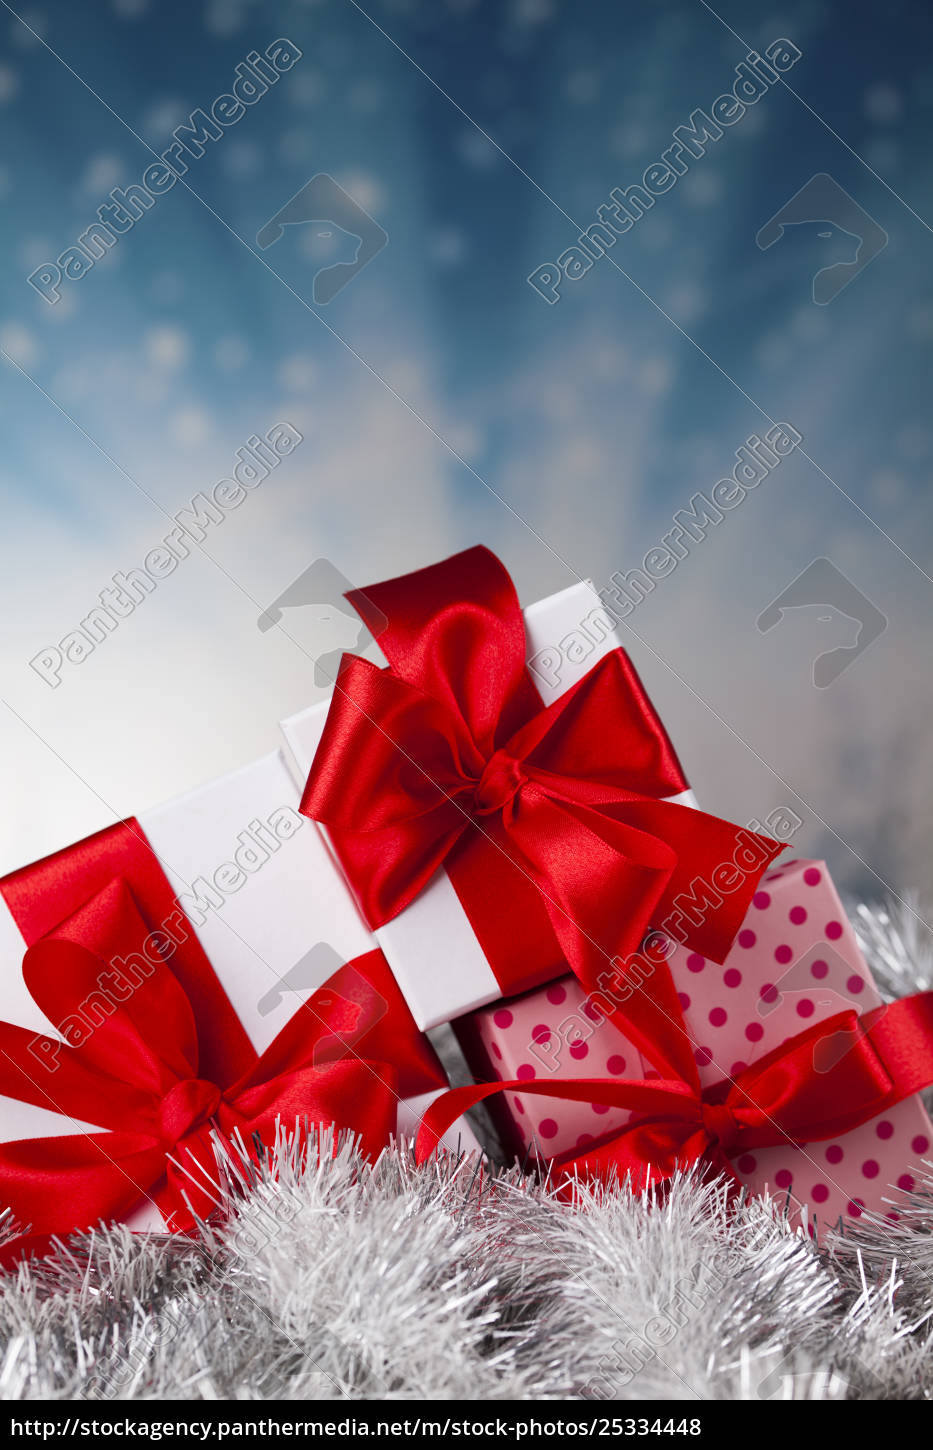 christmastime, celebration, , gift, box, with, red - 25334448